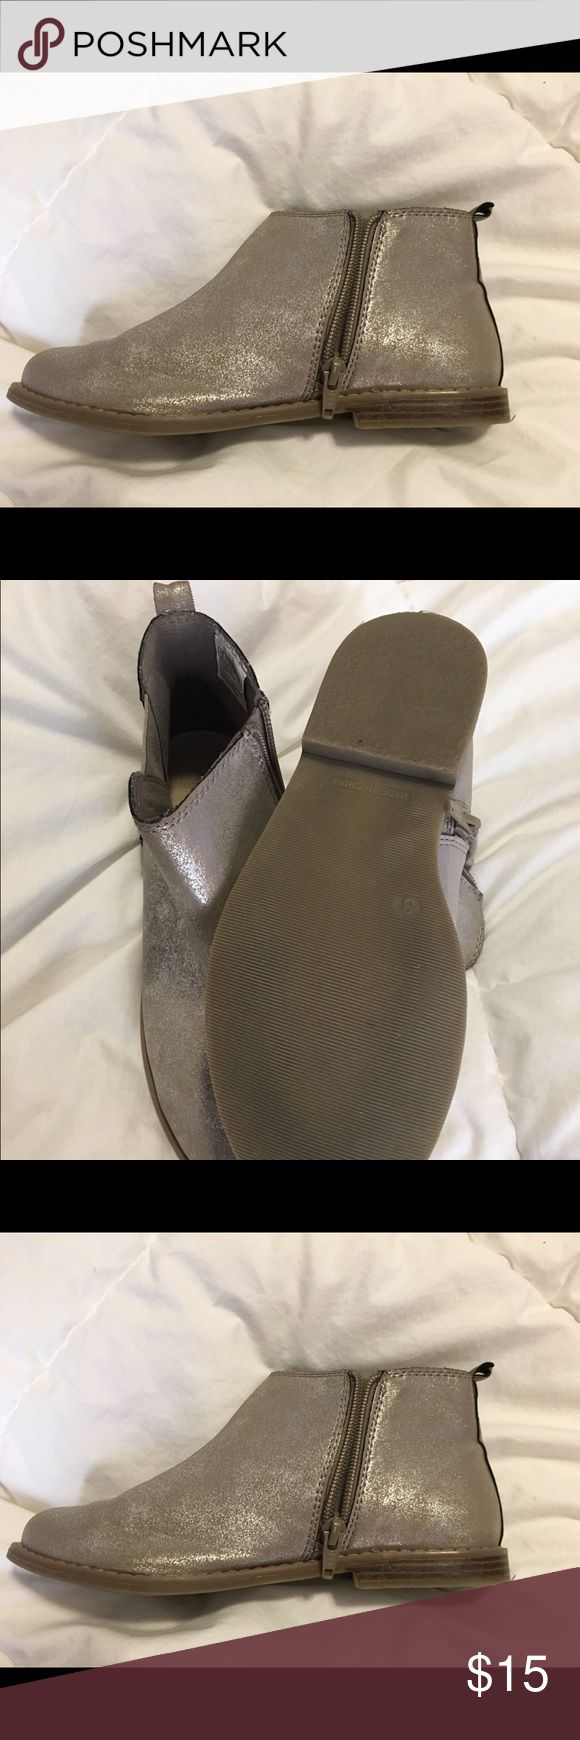 GAP Girls Chelsea boots Silver Chelsea Gap boots. Rarely worn. GAP Shoes Boots